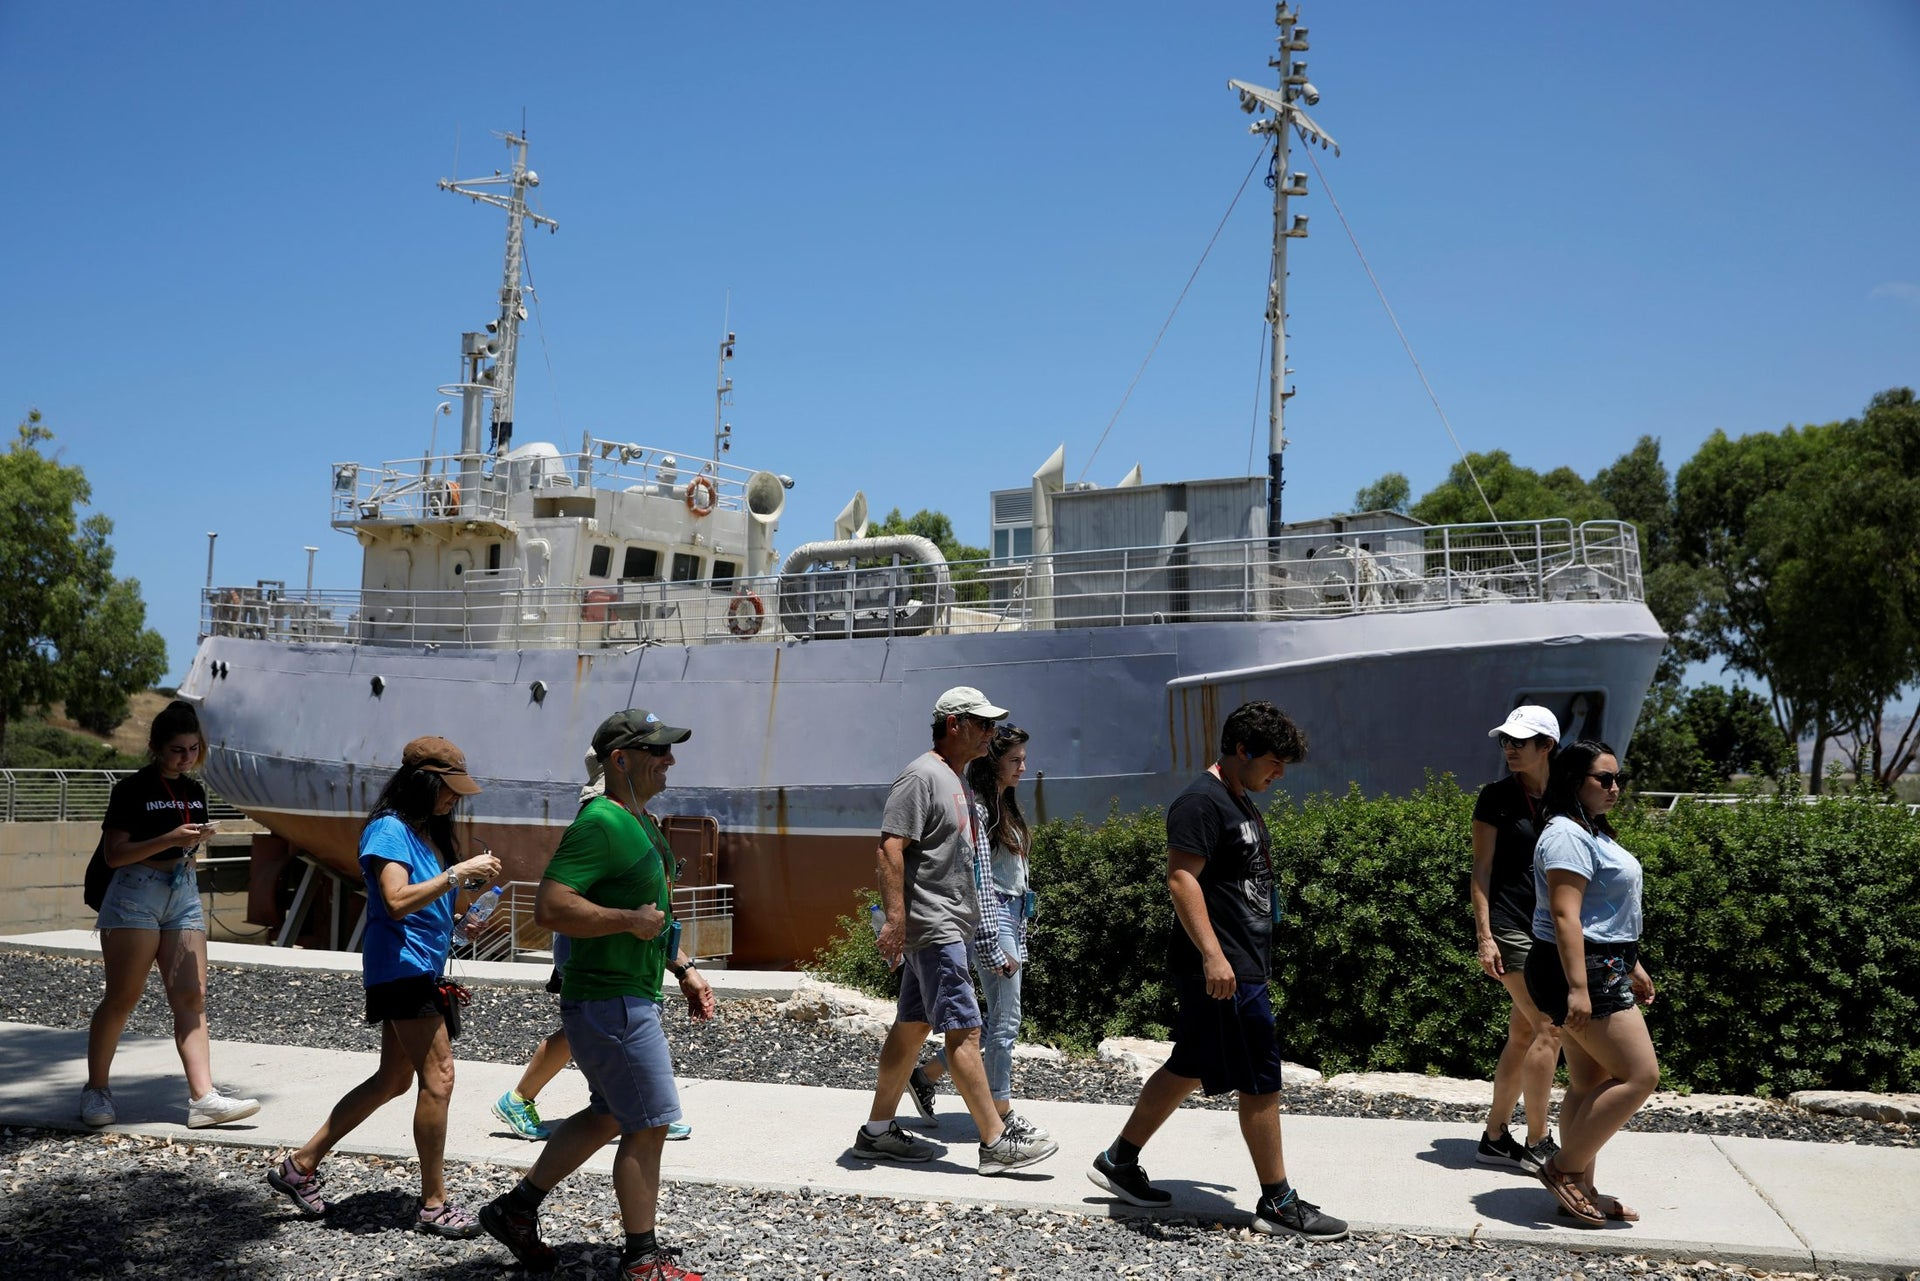 Tourists walk past an original ship used to illegally bring Jewish immigrants, at the former British detention camp of Atlit, currently operated as a museum by the Council for Conservation of Heritage Sites in Israel, June 19, 2018. Picture taken June 19, 2018.